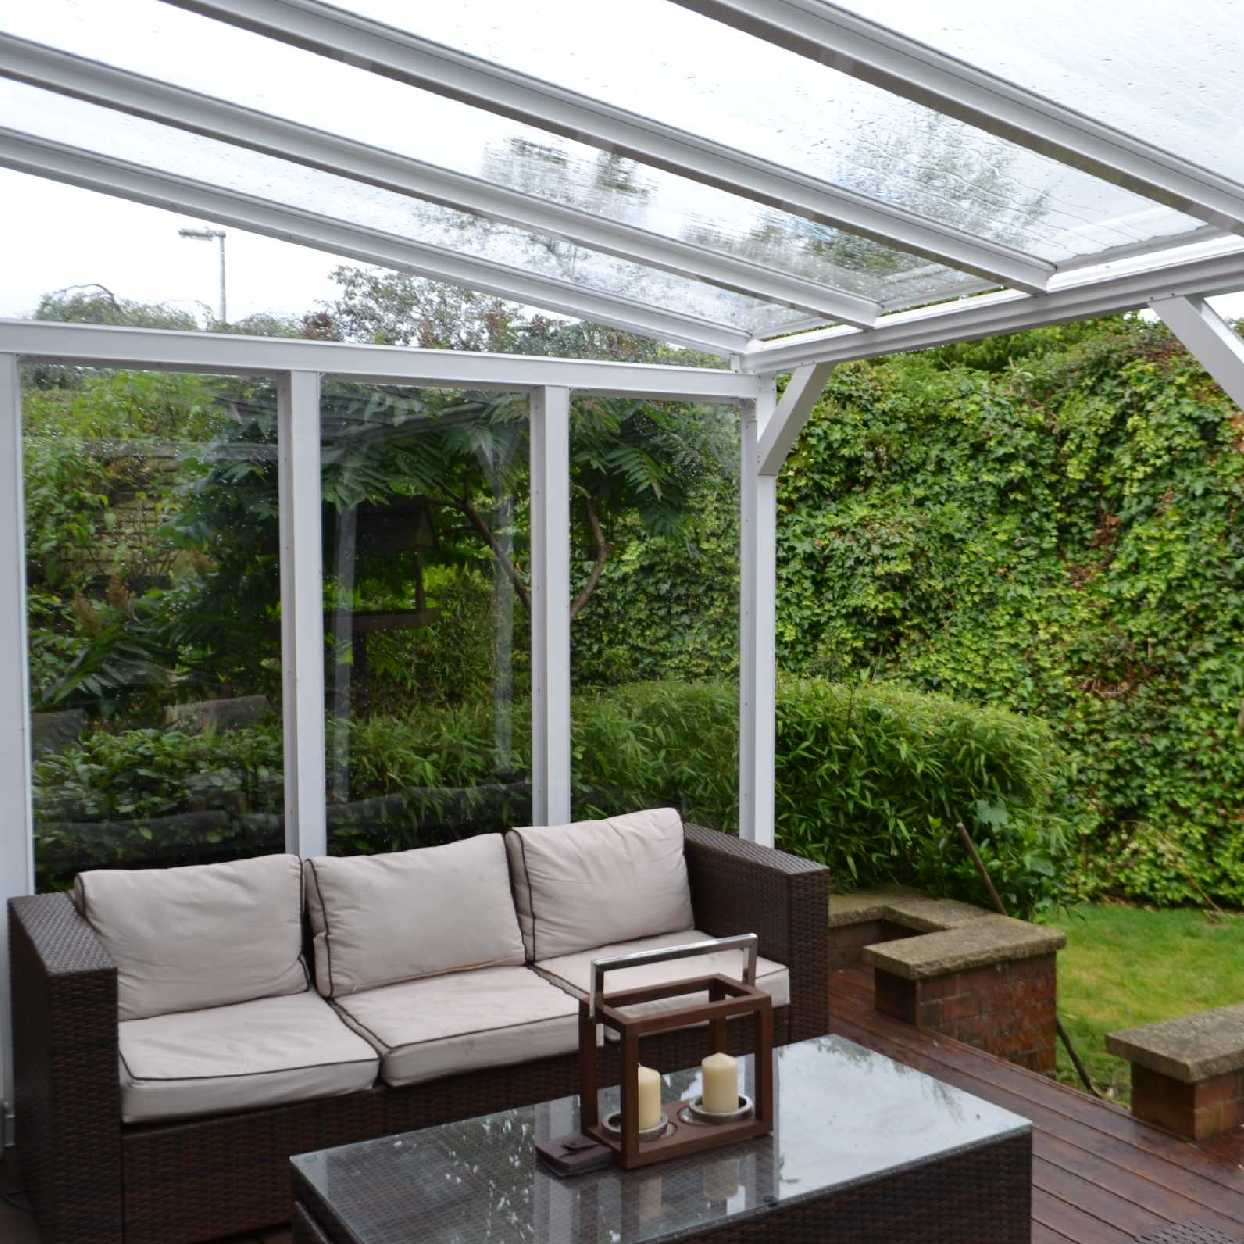 Omega Smart White Lean-To Canopy with 6mm Glass Clear Plate Polycarbonate Glazing - 9.1m (W) x 2.0m (P), (5) Supporting Posts